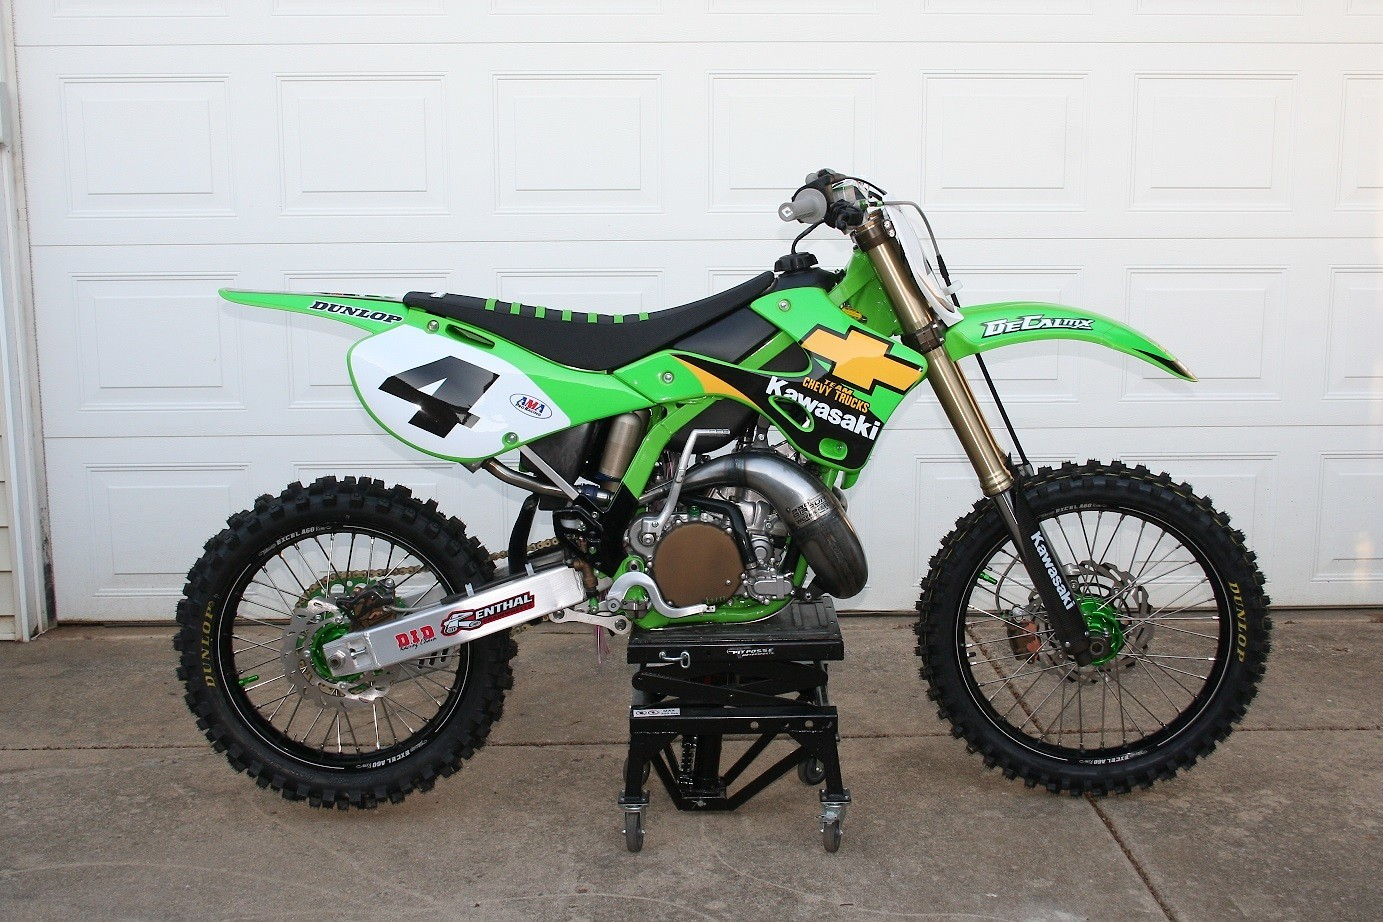 KX250 4 - Cadpro18 - Motocross Pictures - Vital MX